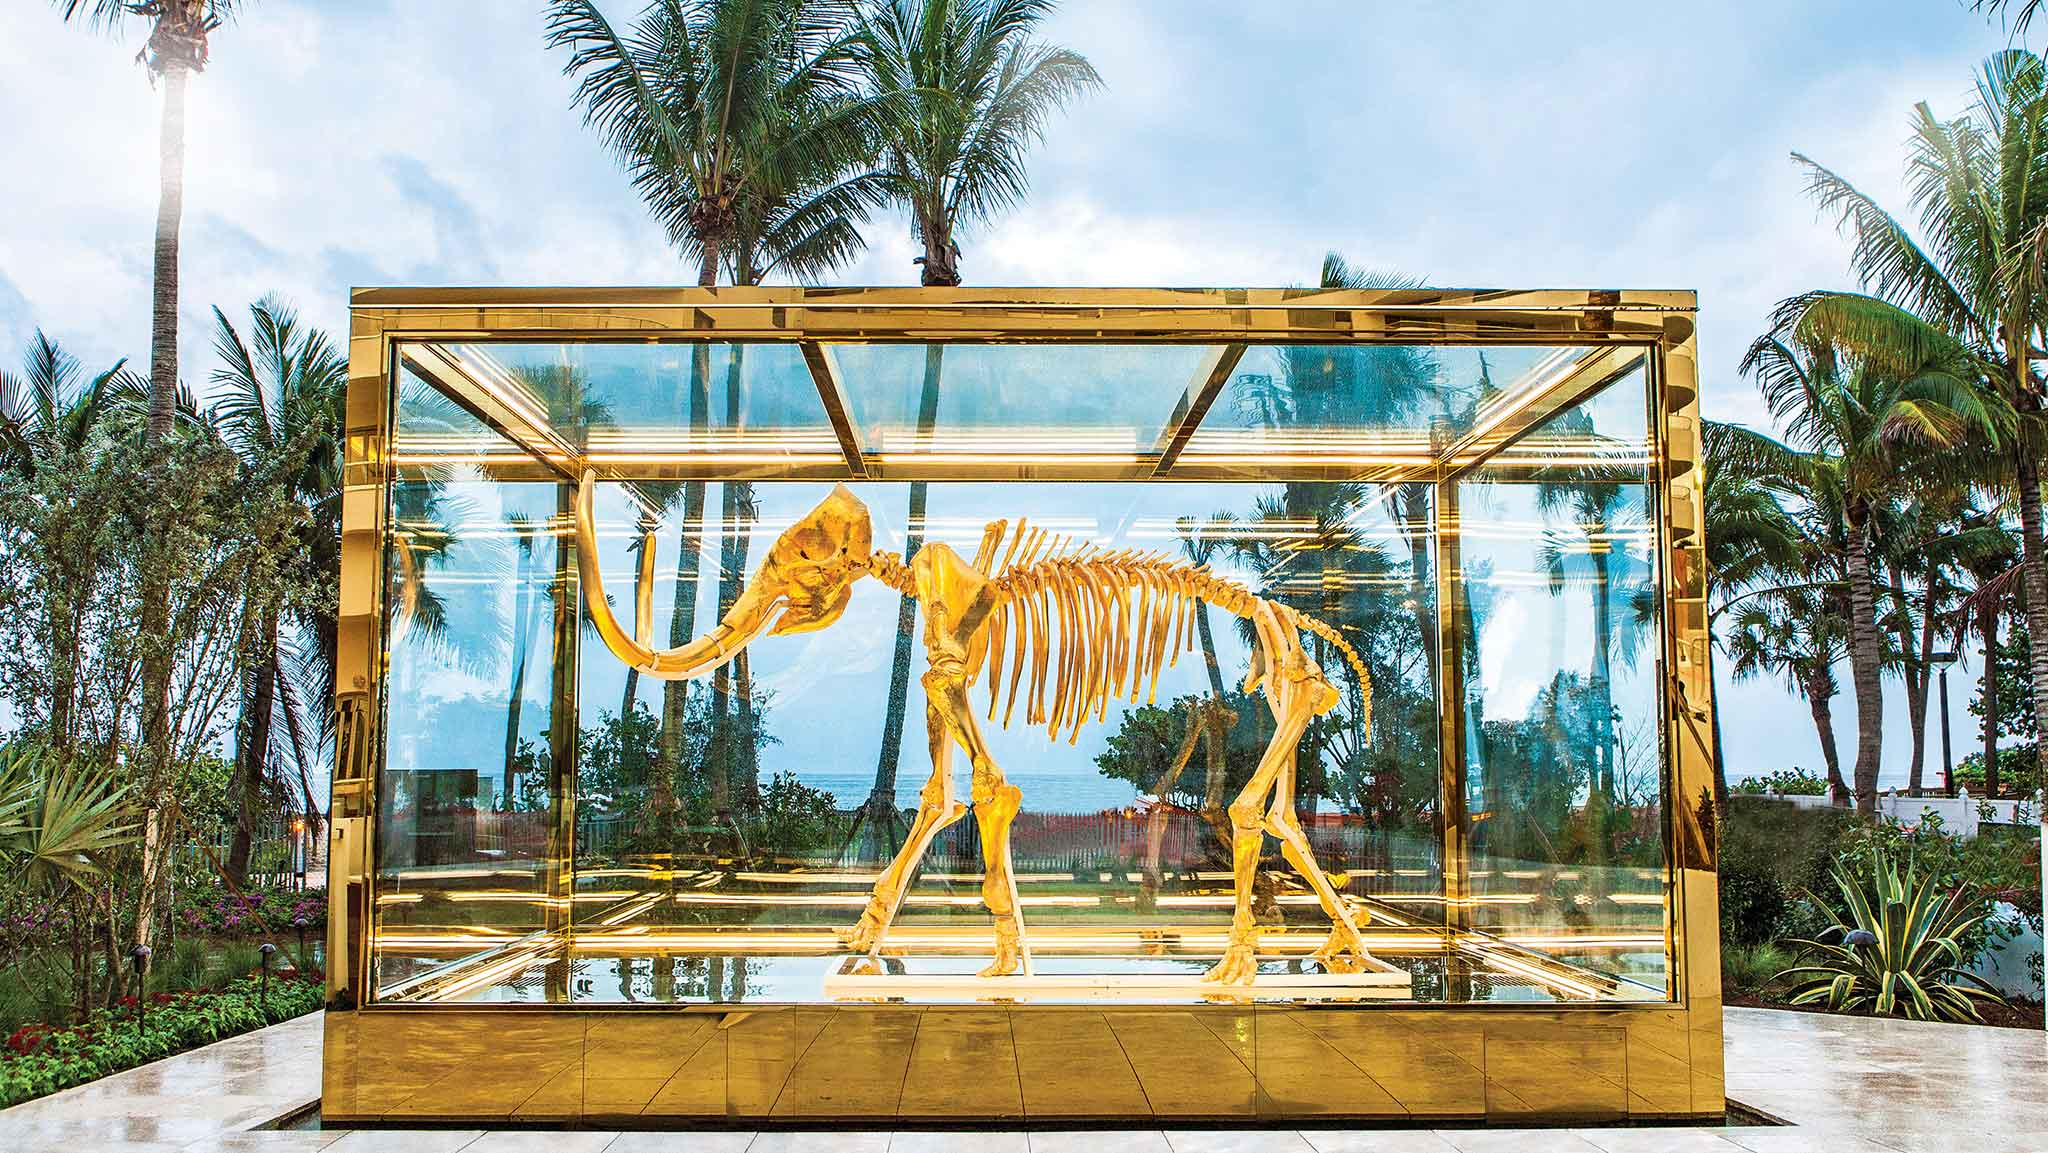 Artists We Love: Damien Hirst